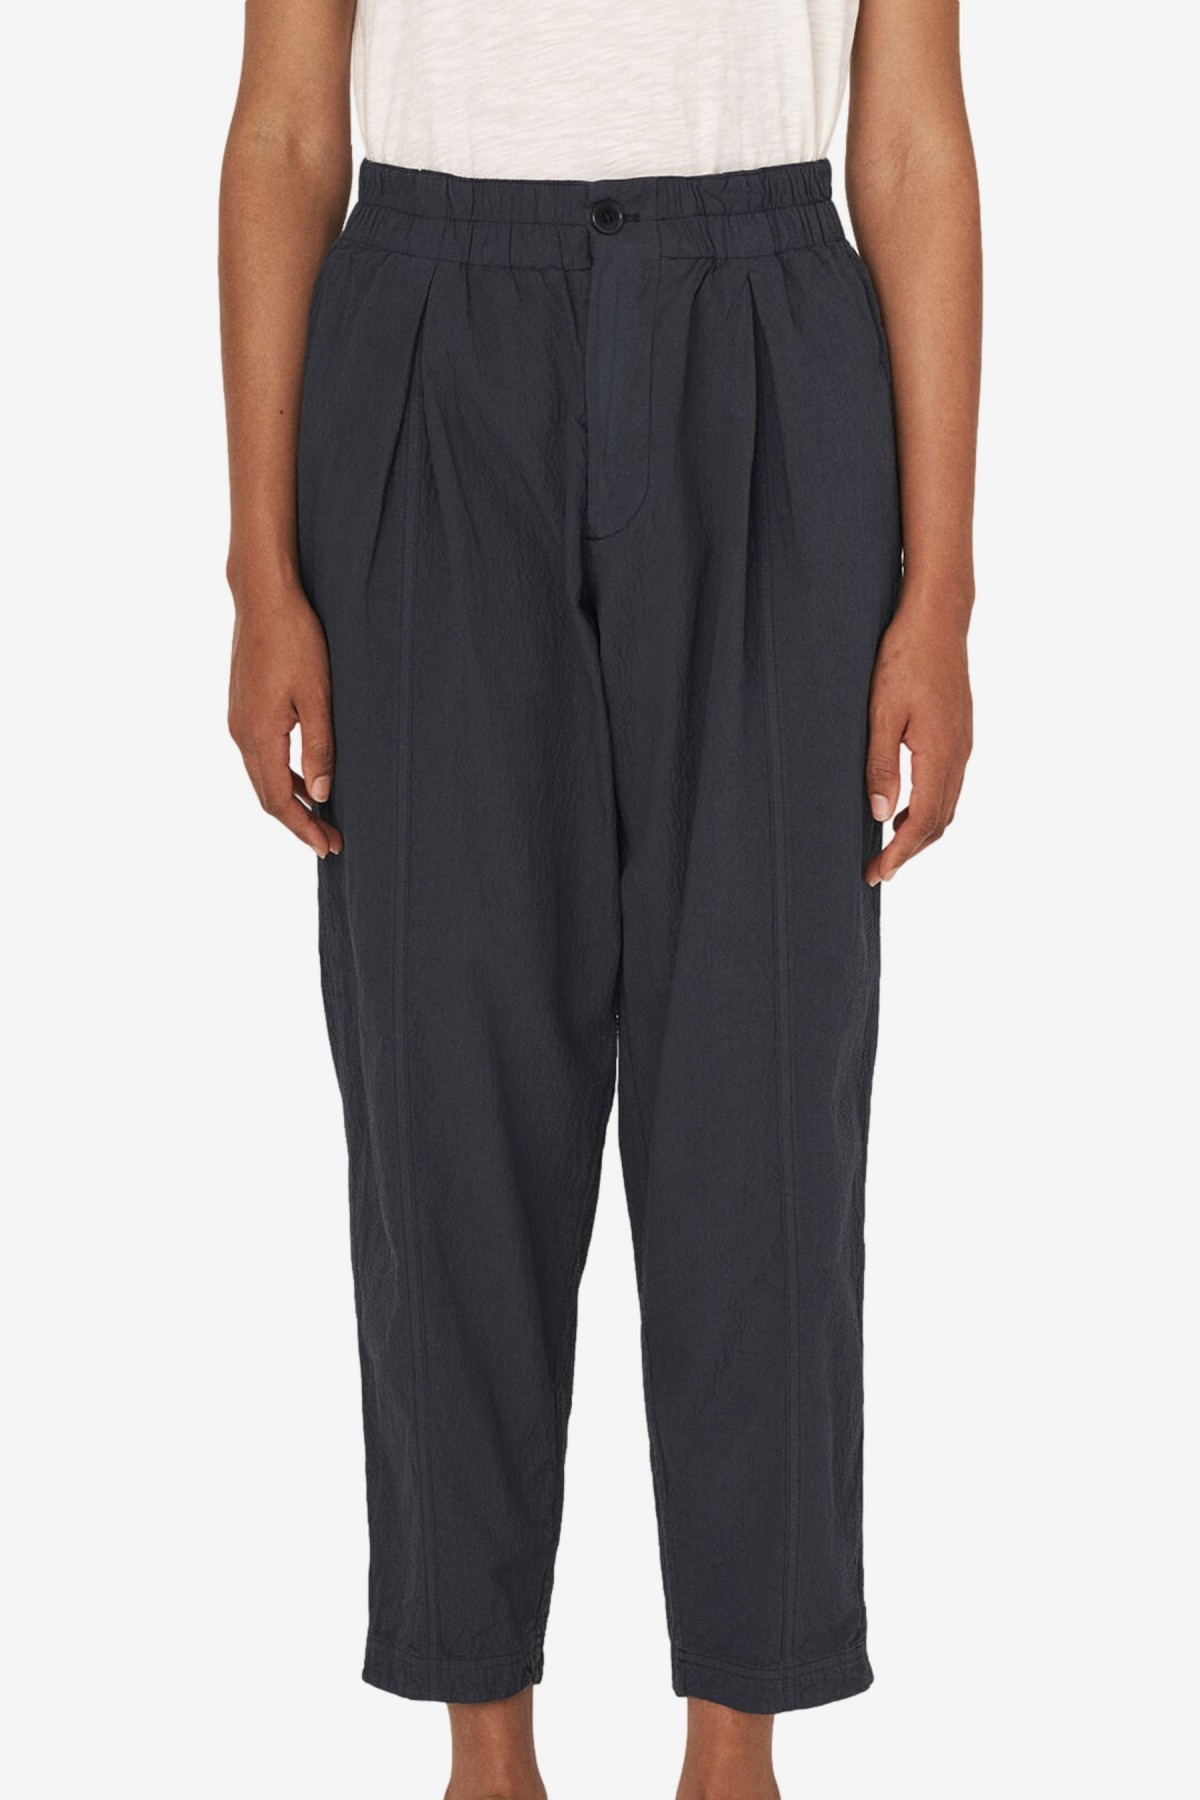 YMC You Must Create Sylvian Trousers in Navy